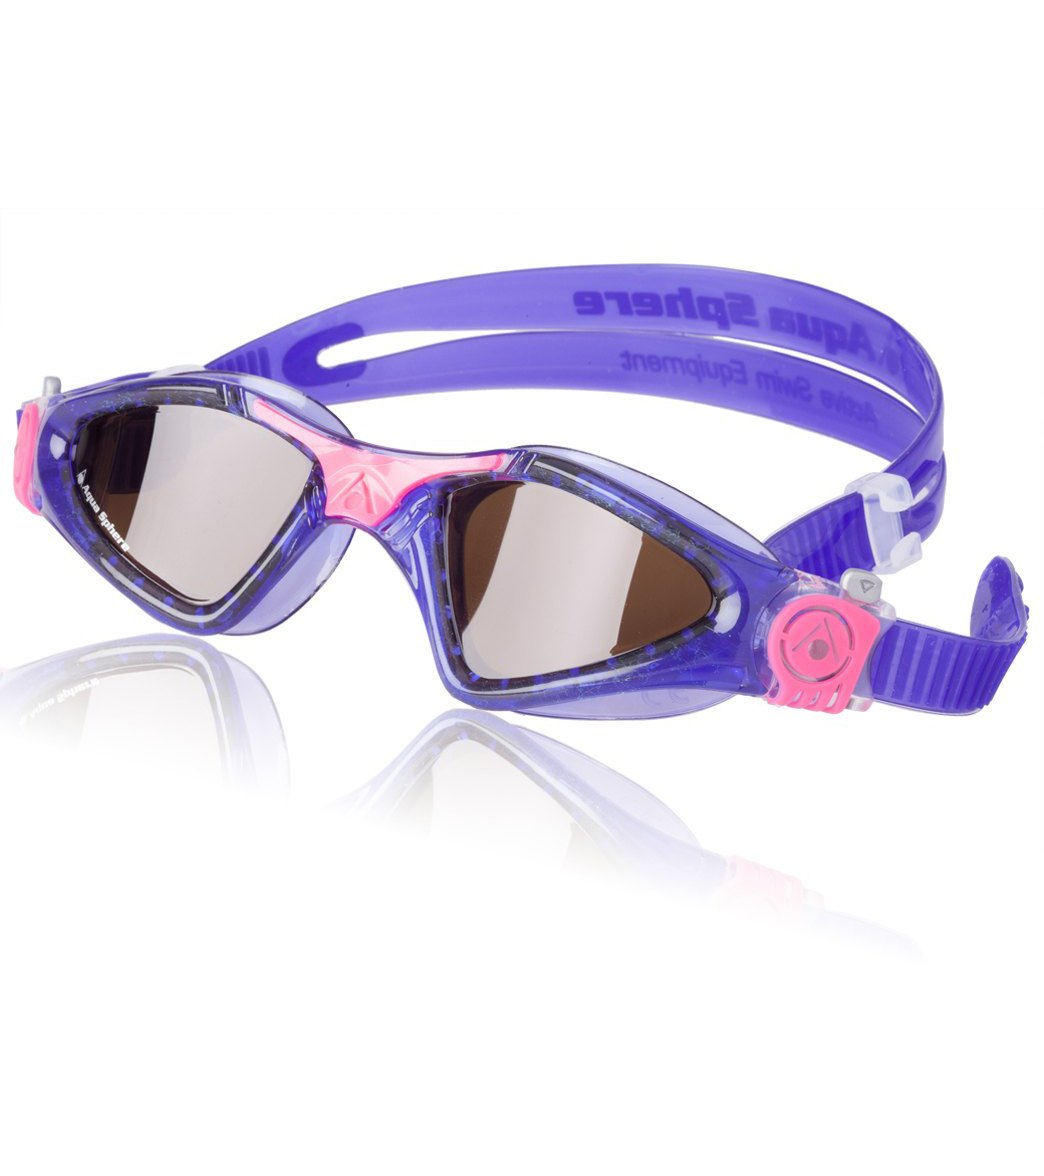 692a22a43b6 Aqua Sphere Kayenne Lady Polarized Lens Goggles at SwimOutlet.com - Free  Shipping